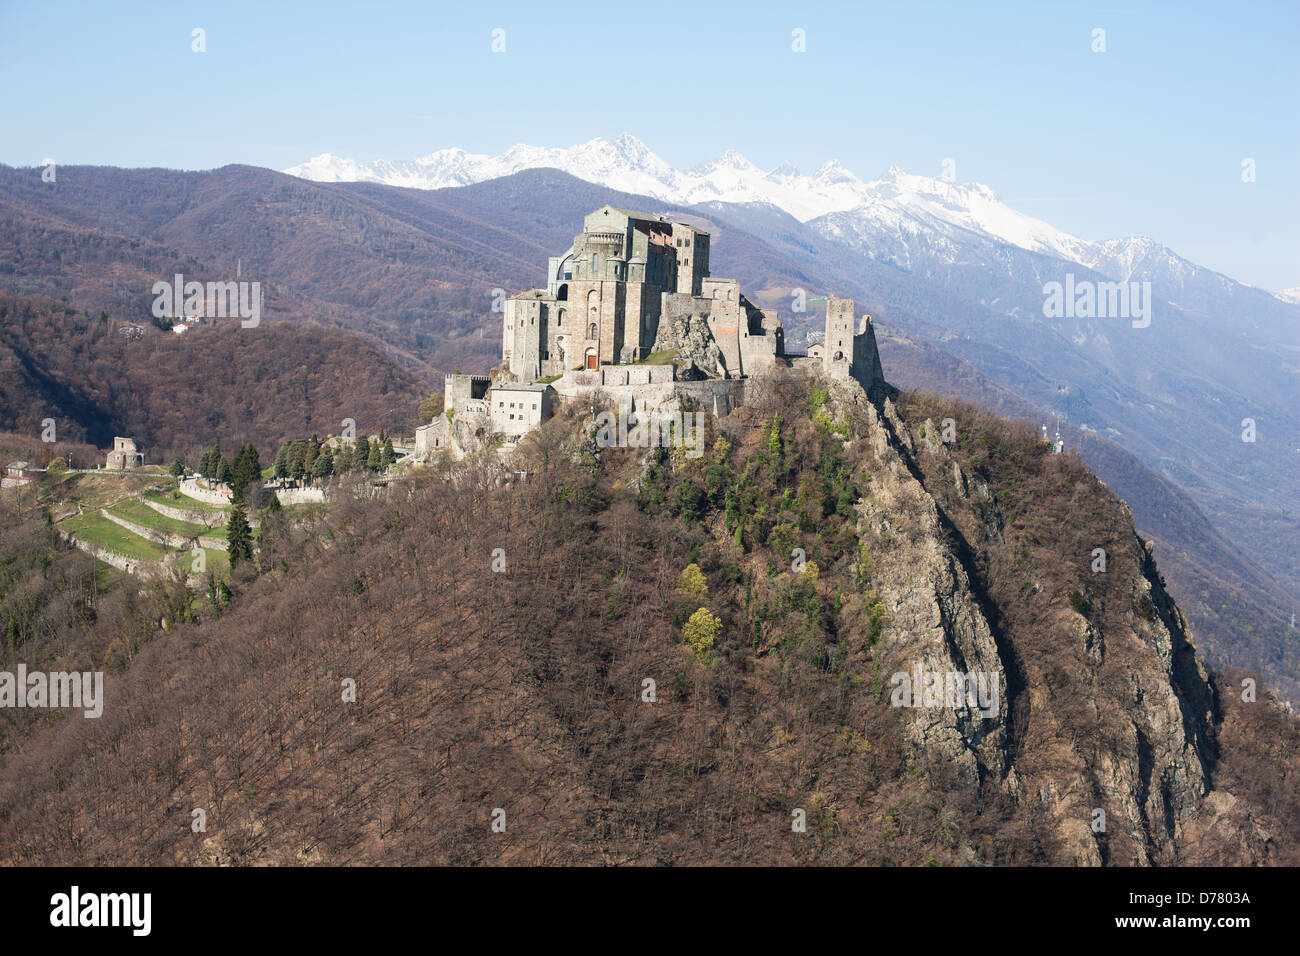 sacra di san michele aerial view abbey on a rocky. Black Bedroom Furniture Sets. Home Design Ideas